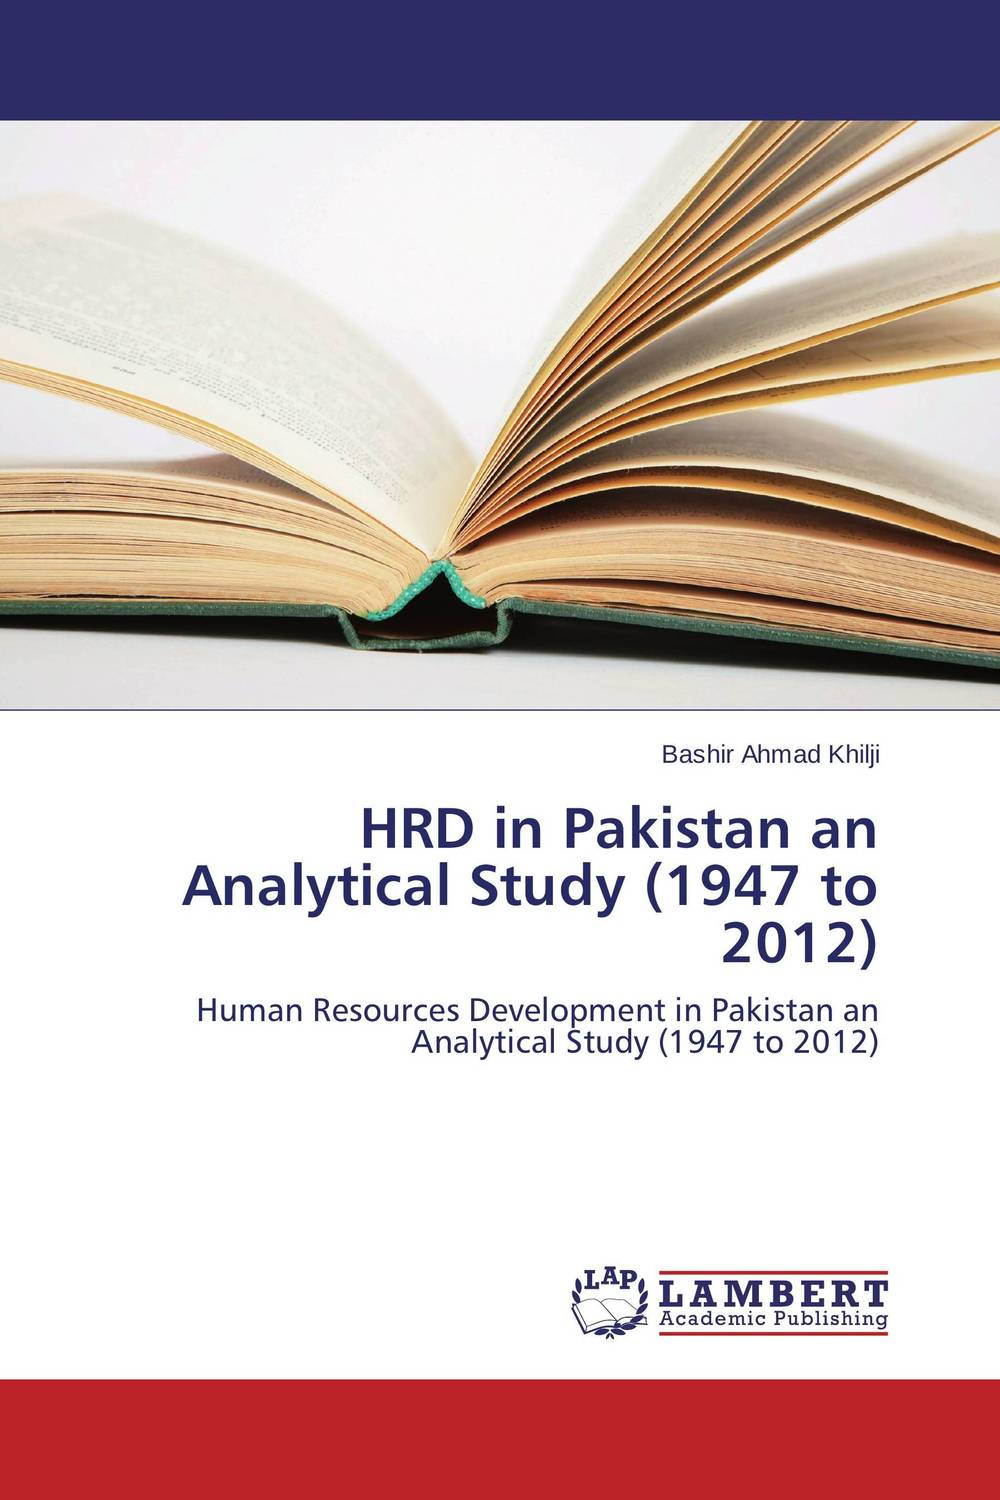 HRD in Pakistan an Analytical Study (1947 to 2012) leishmaniasis in pakistan